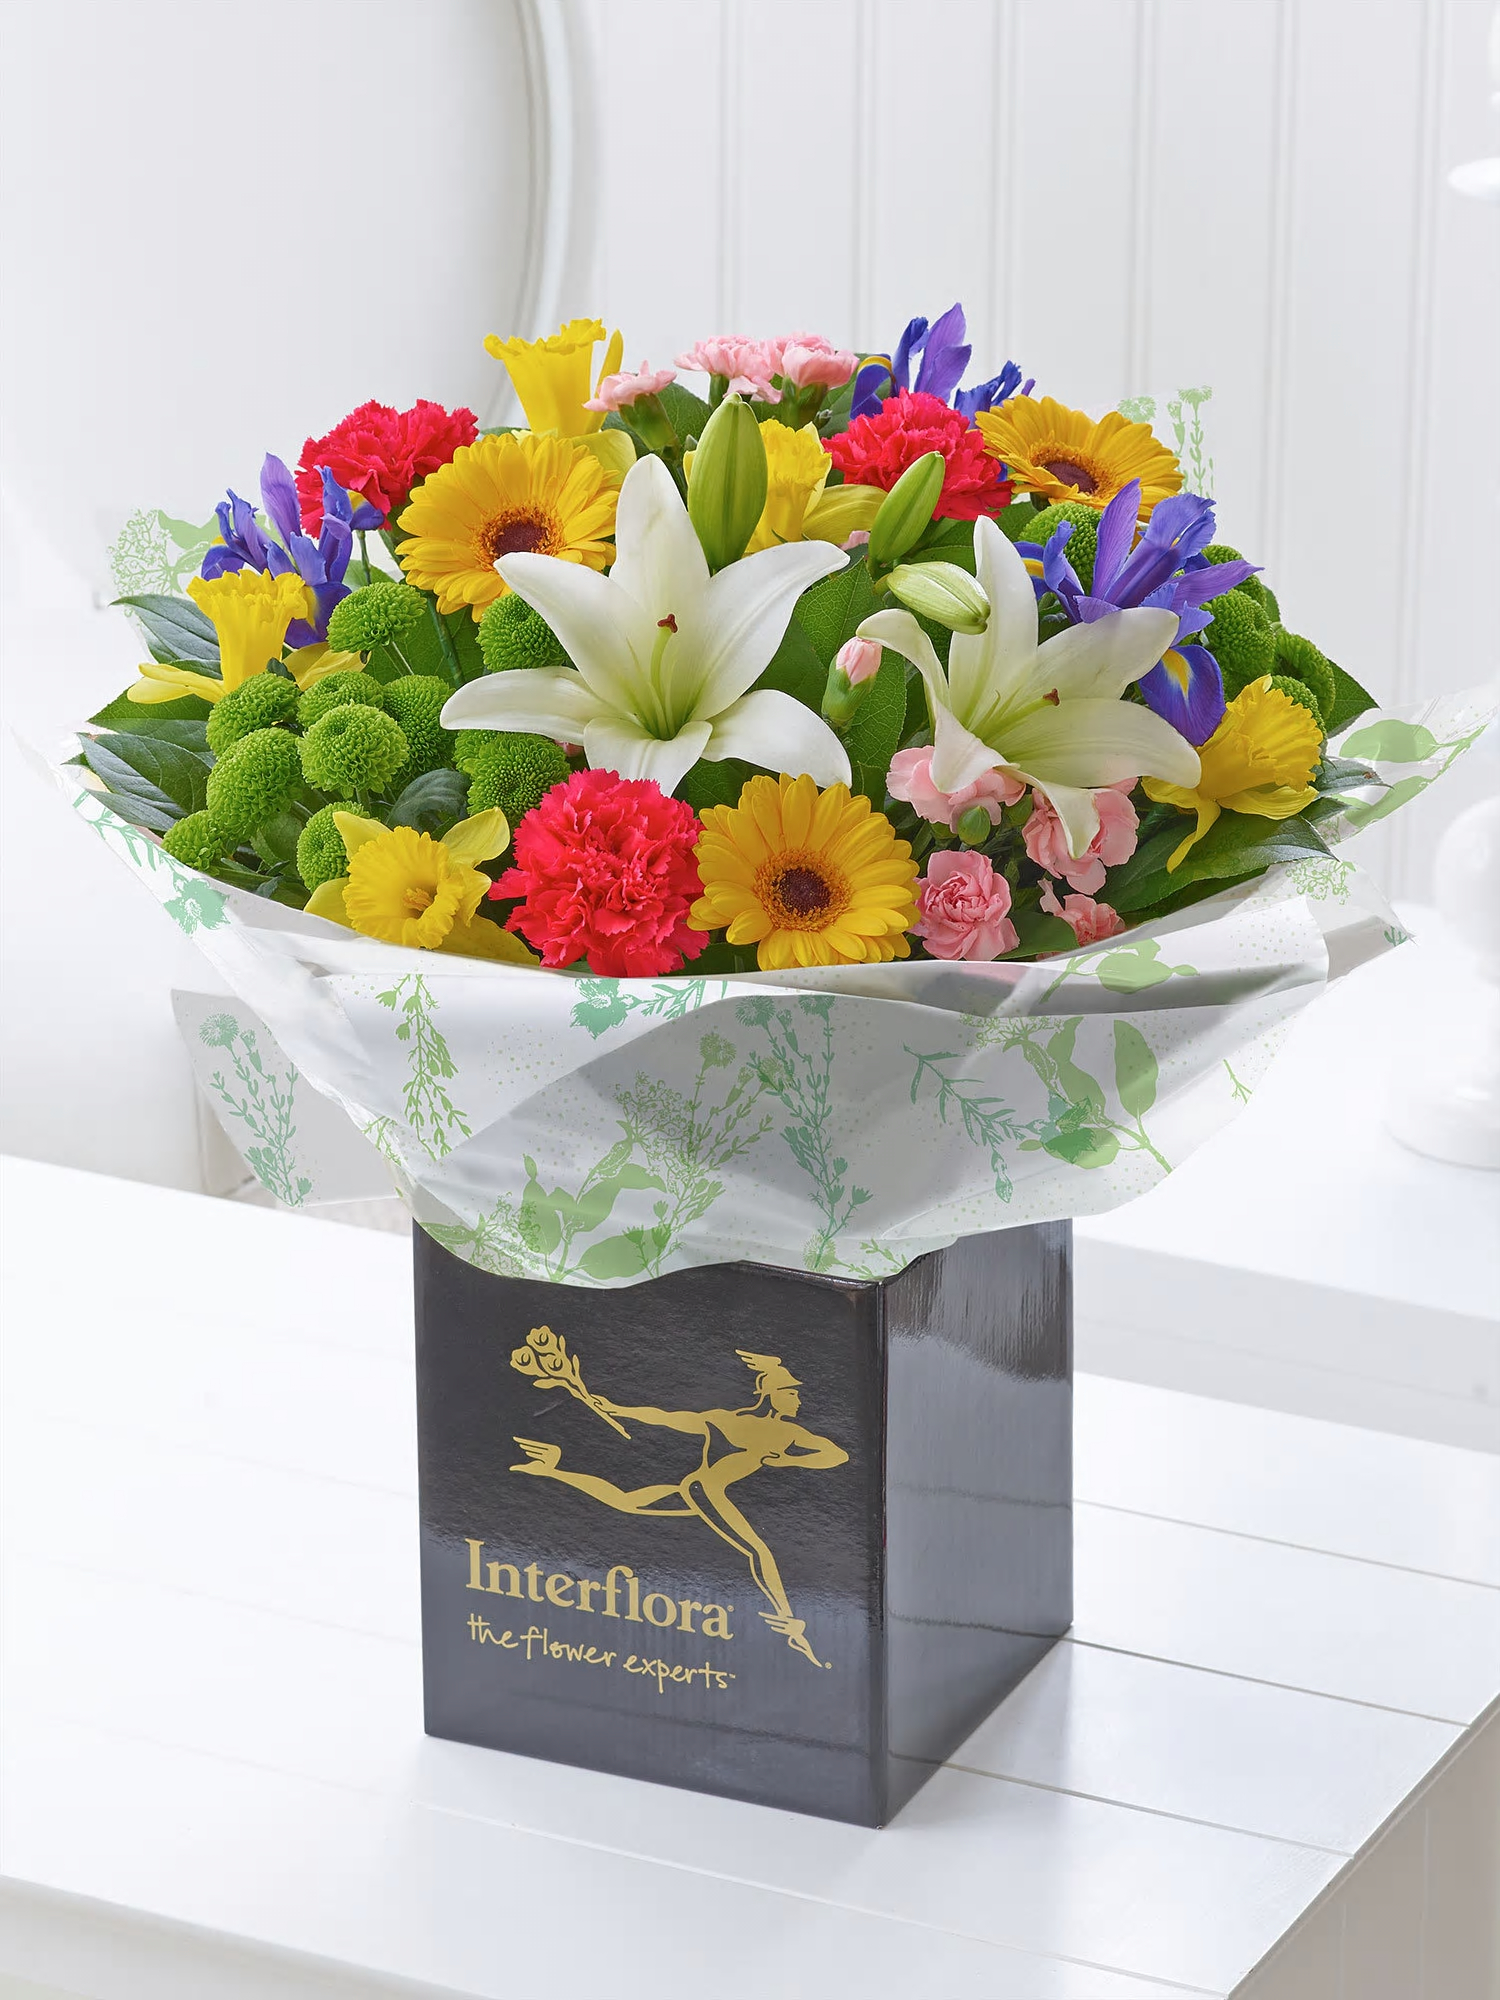 Fresh flower scent in london 748 holloway road image of spring favourites hand tied izmirmasajfo Choice Image